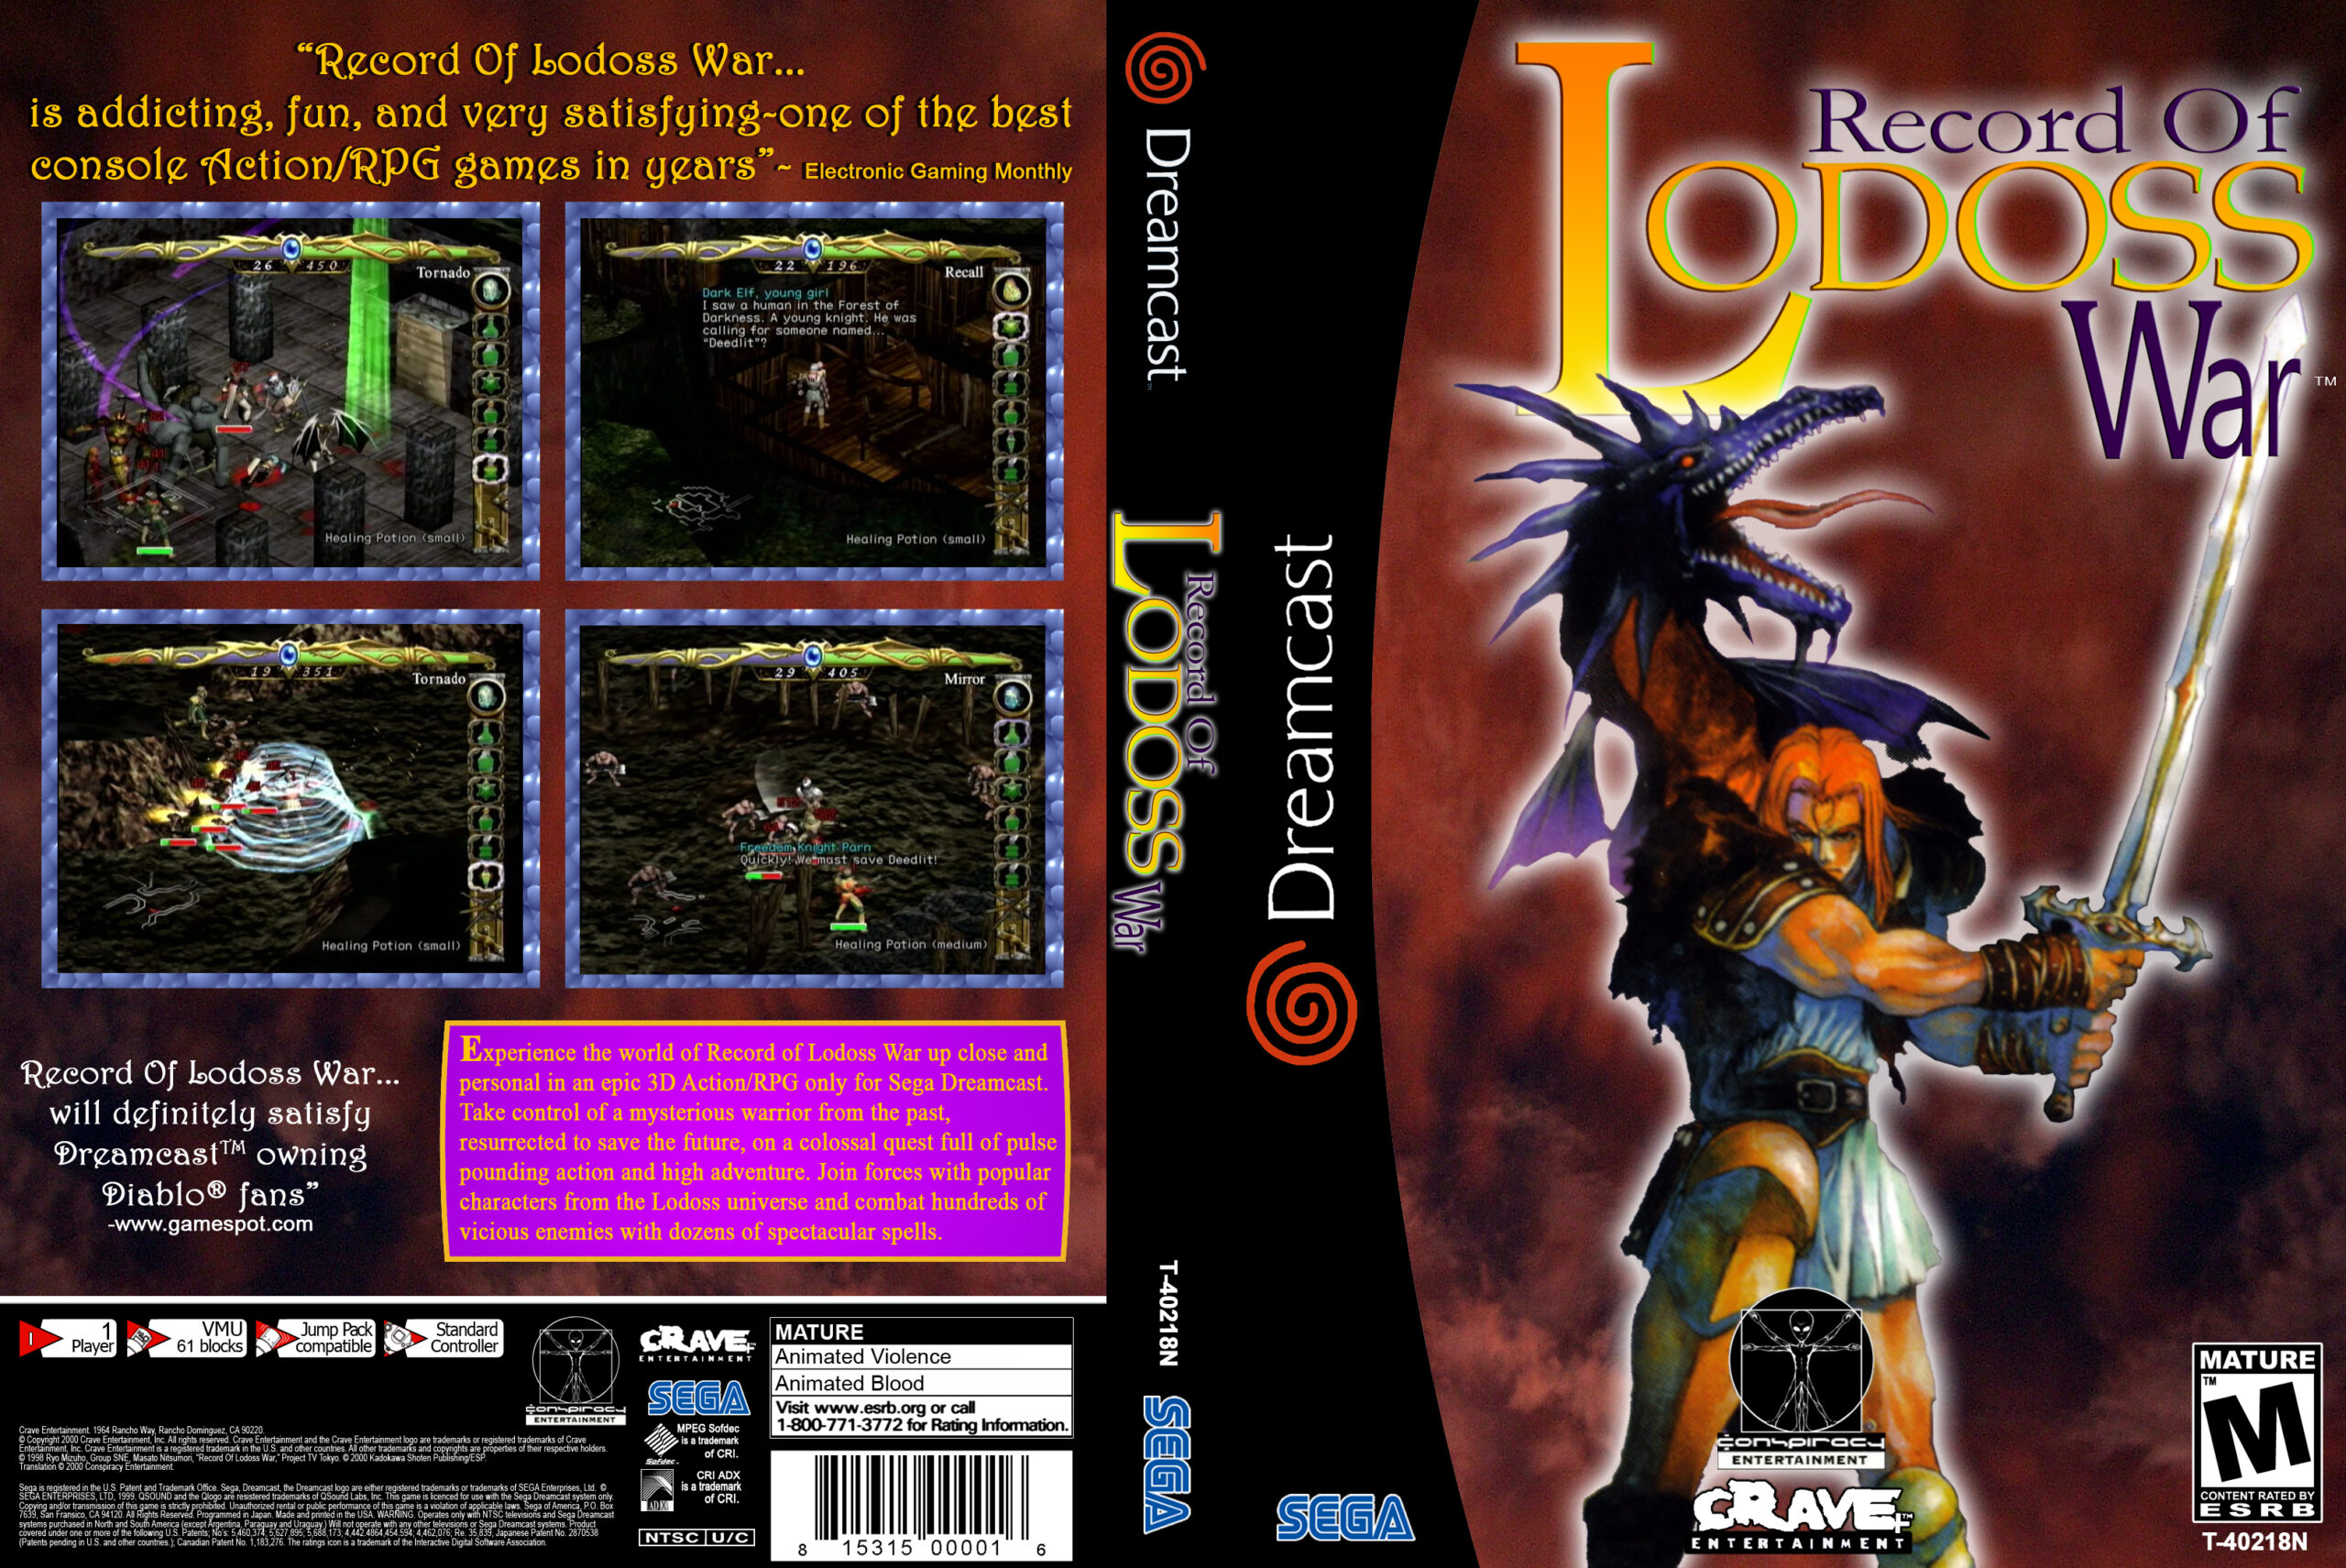 Record of Lodoss War cover